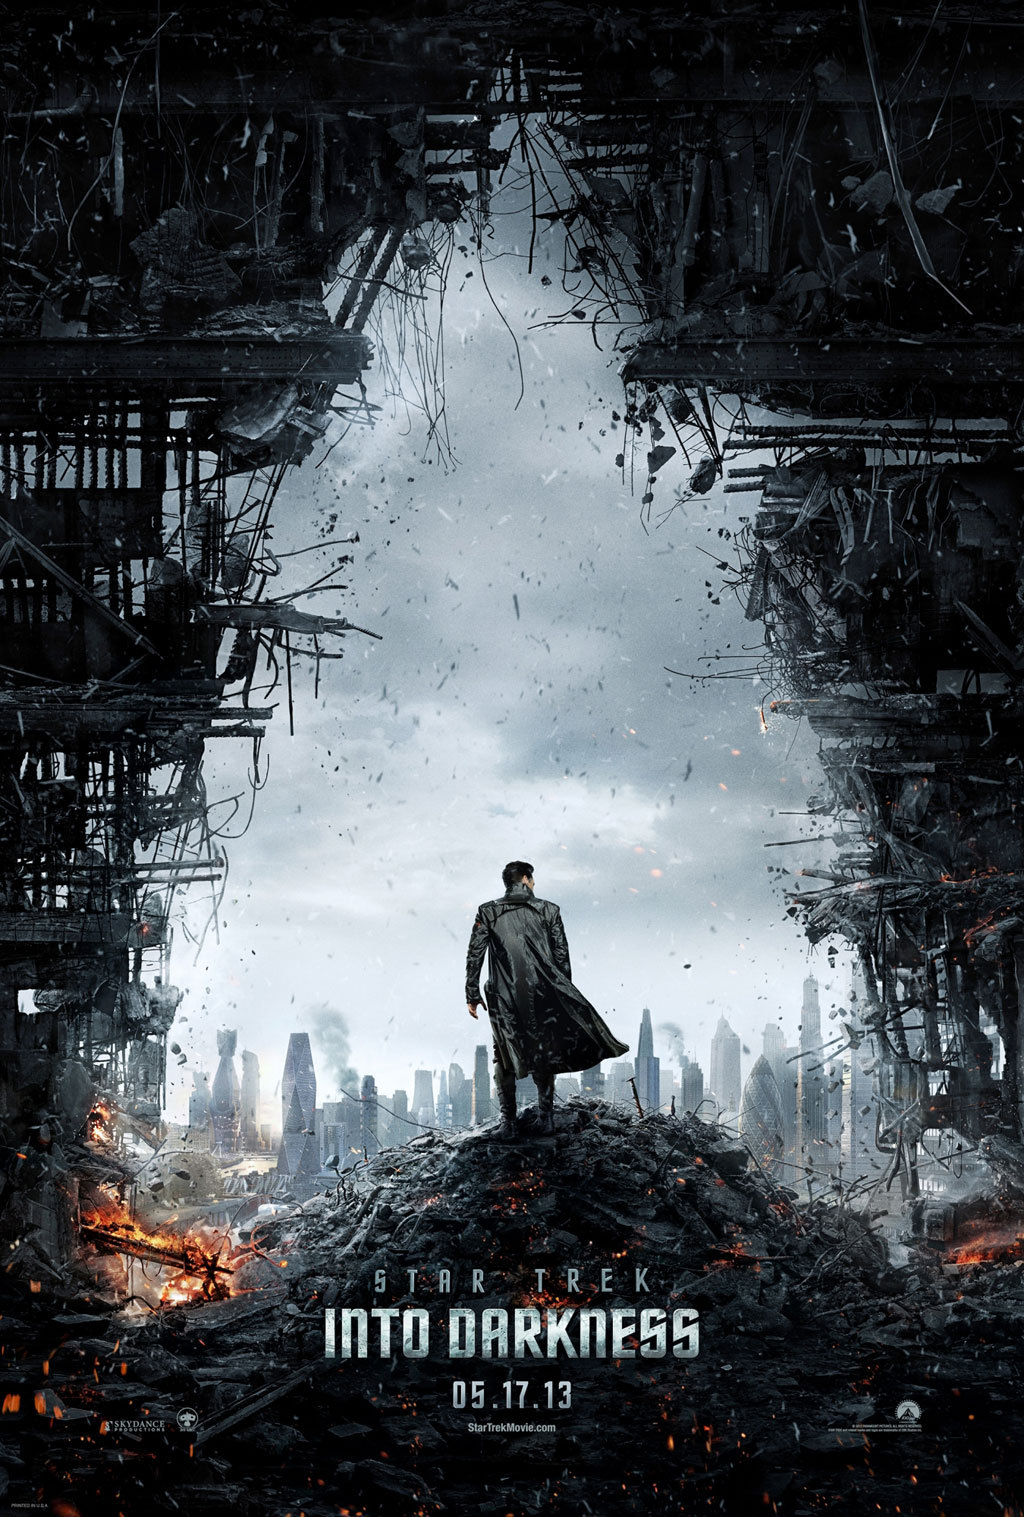 264. Star Trek Into Darkness (May 17)